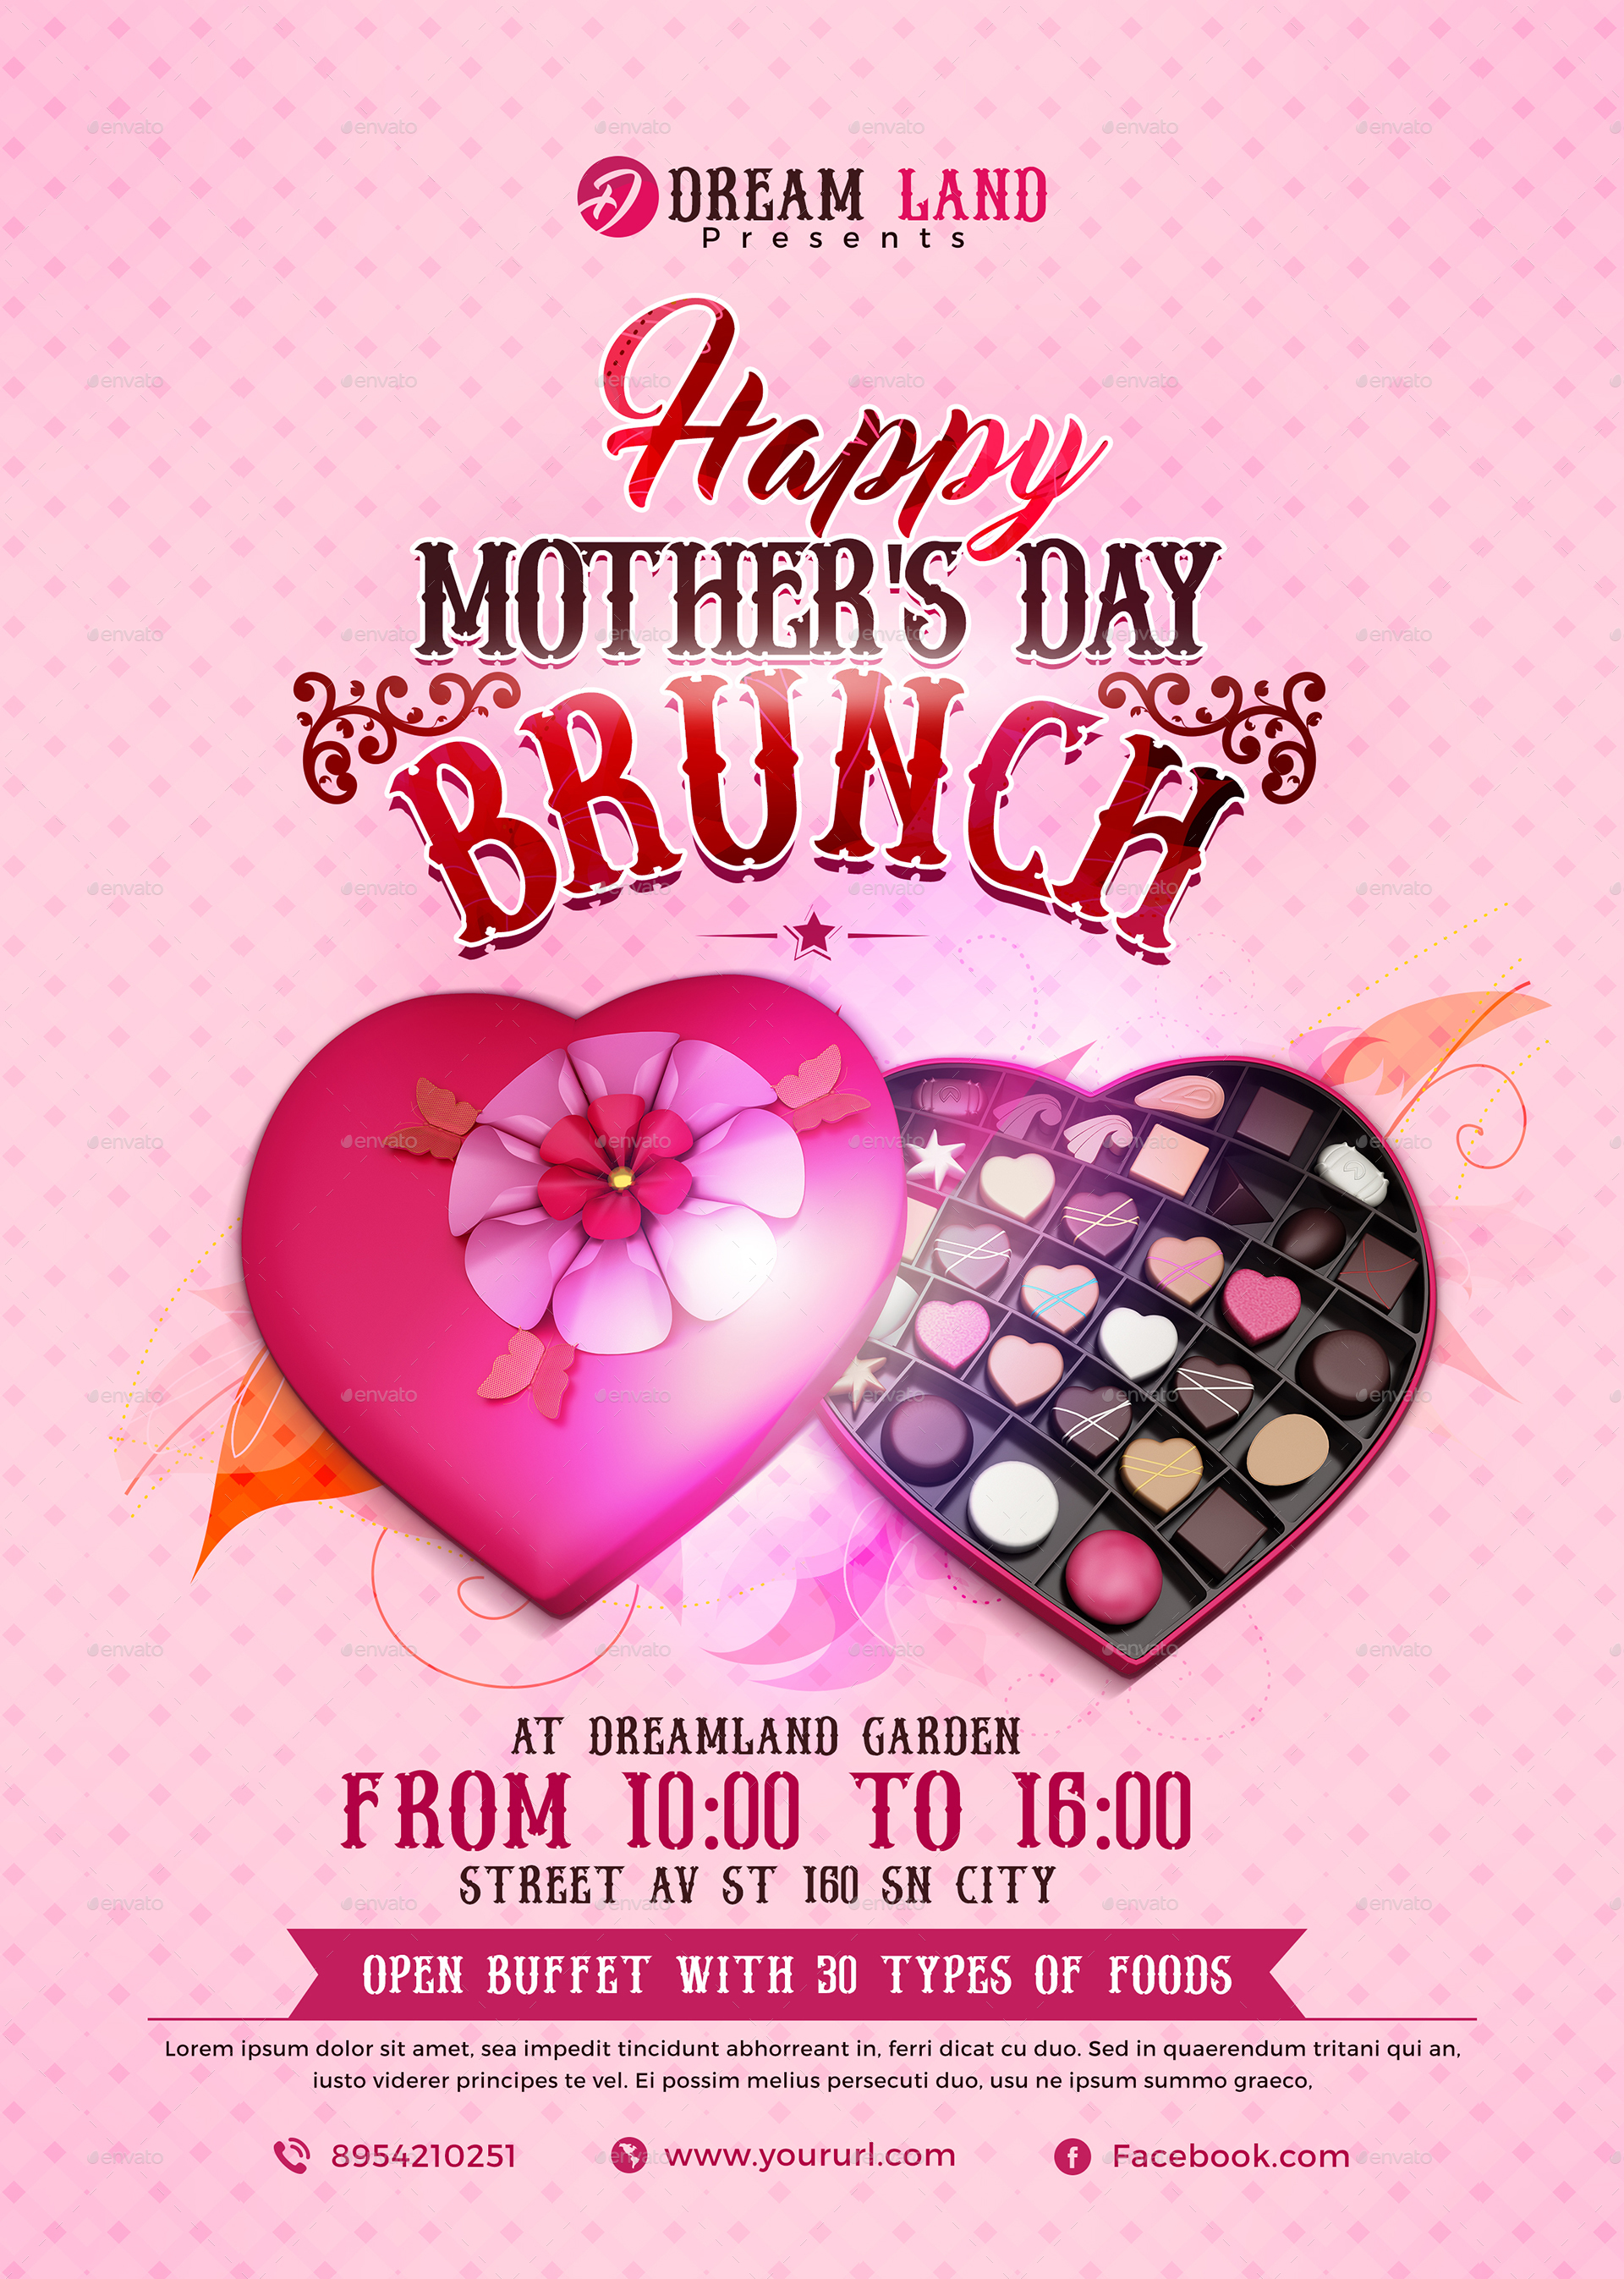 BEE 1293 Mothers Day Flyer Template_Preview Image Set/Flyer_CMYK ... Great Ideas